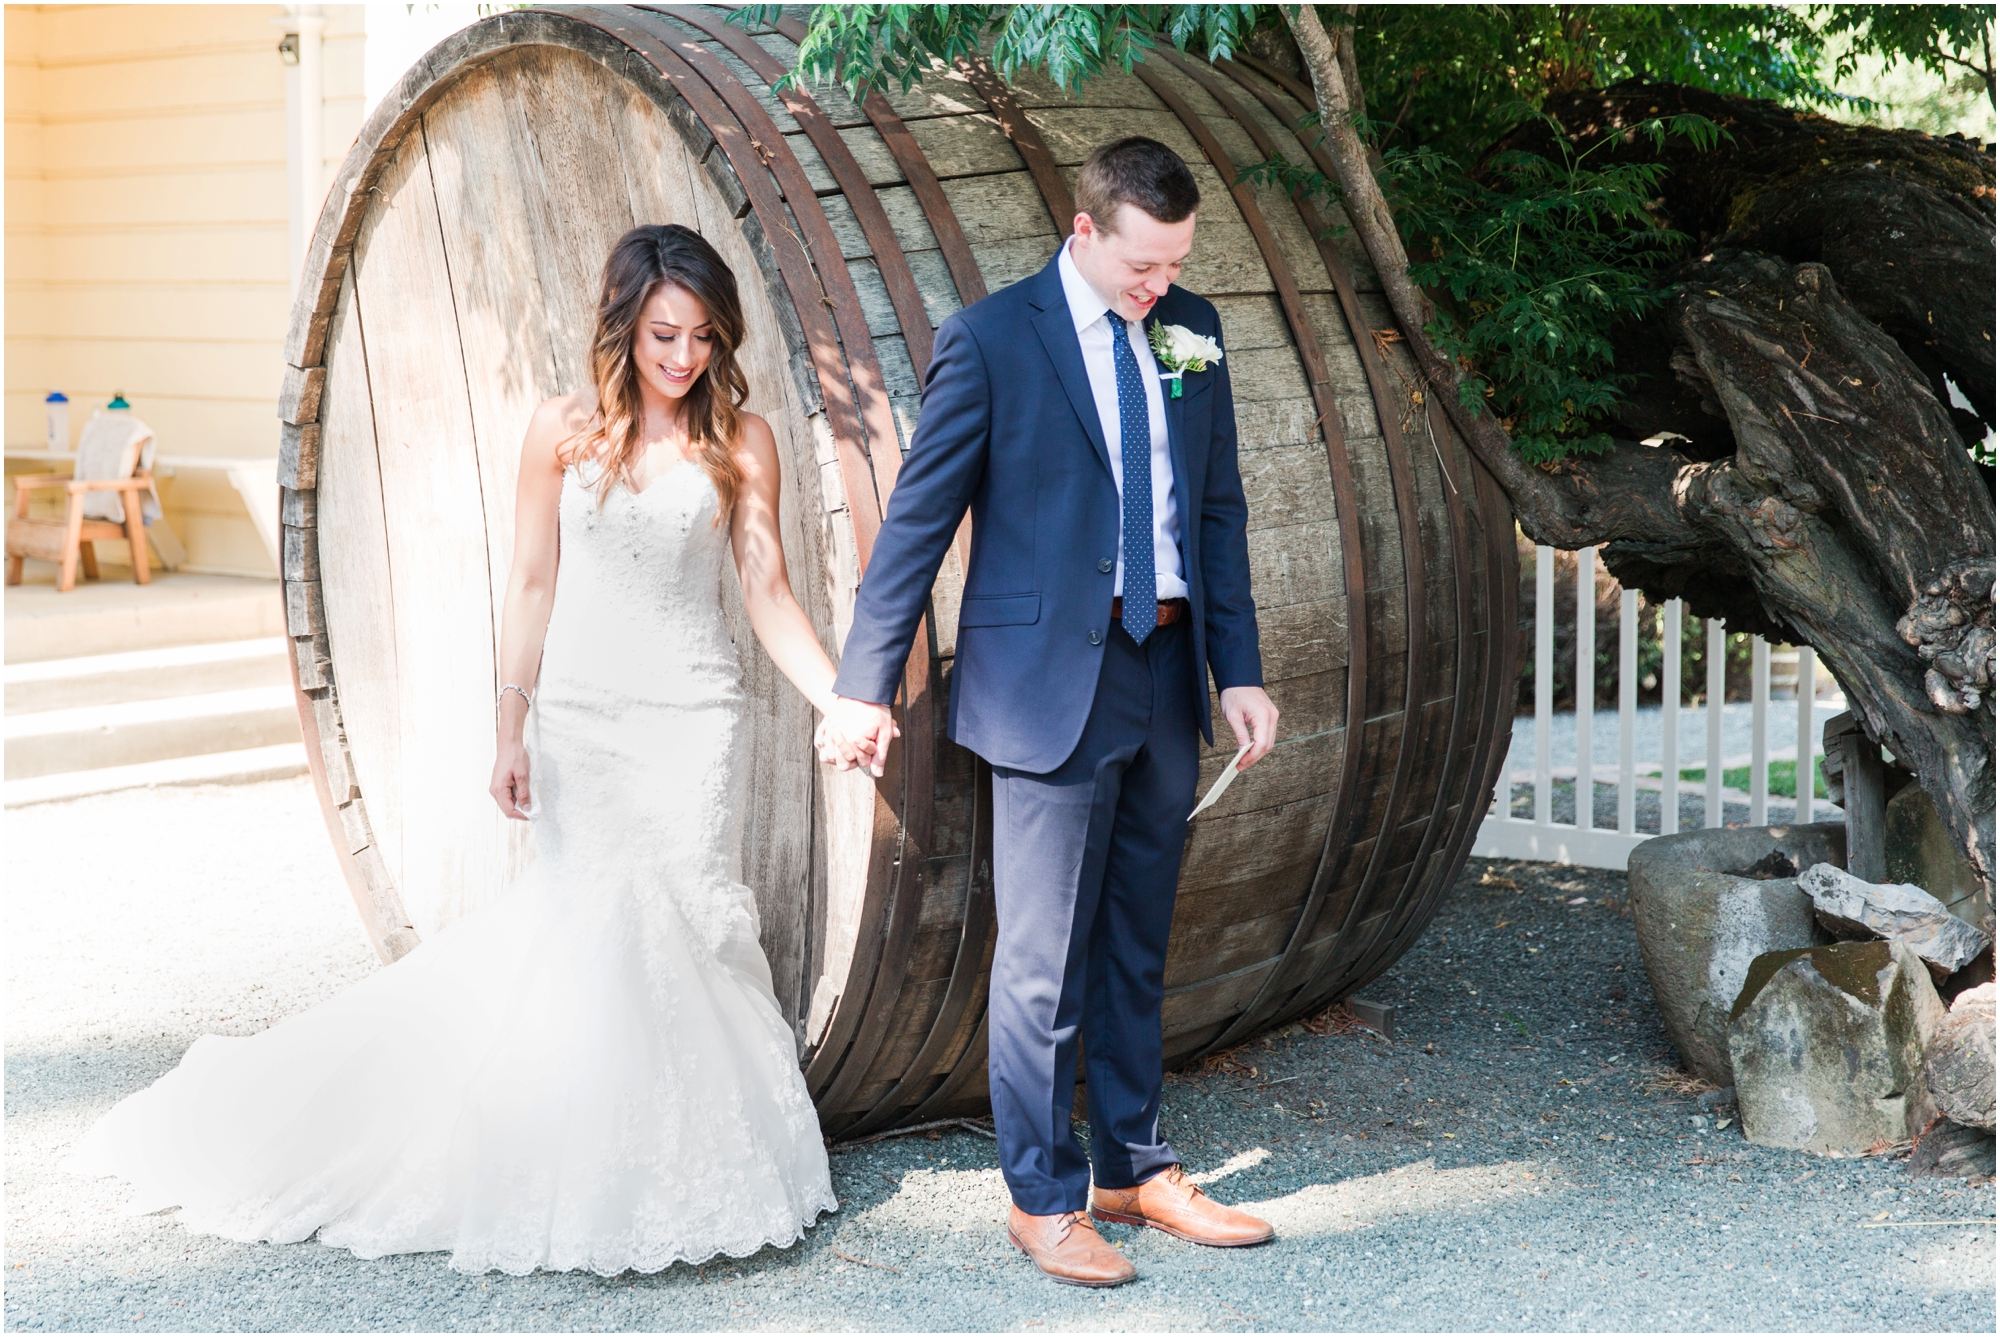 Picchetti Winery wedding pictures by Briana Calderon Photography_2035.jpg